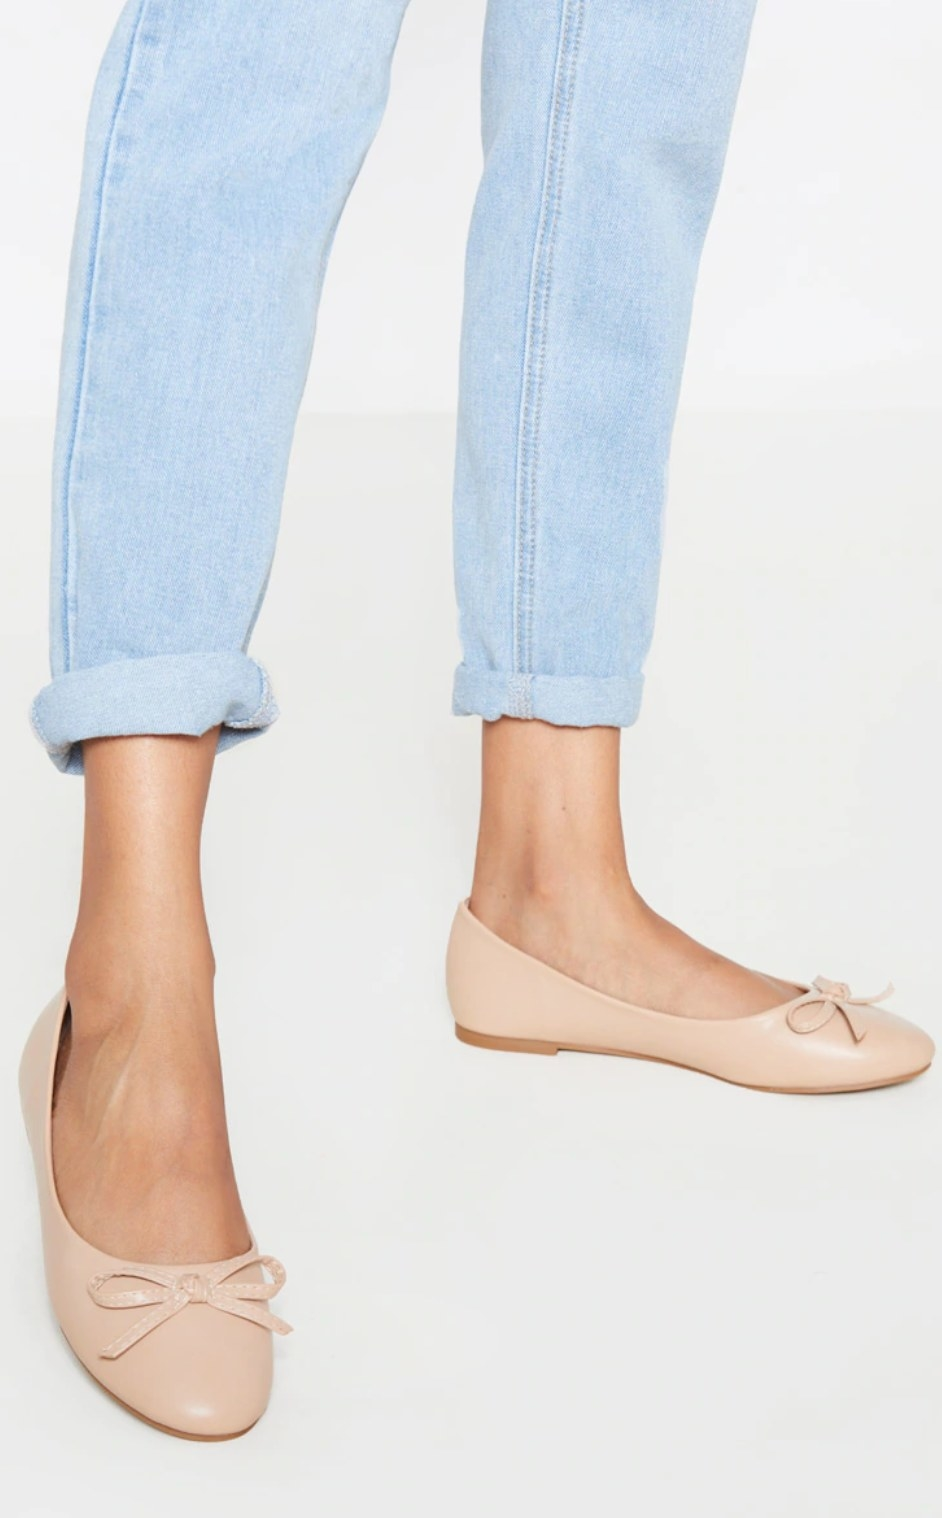 model wearing the nude ballet flats with a bow detail and blue jeans